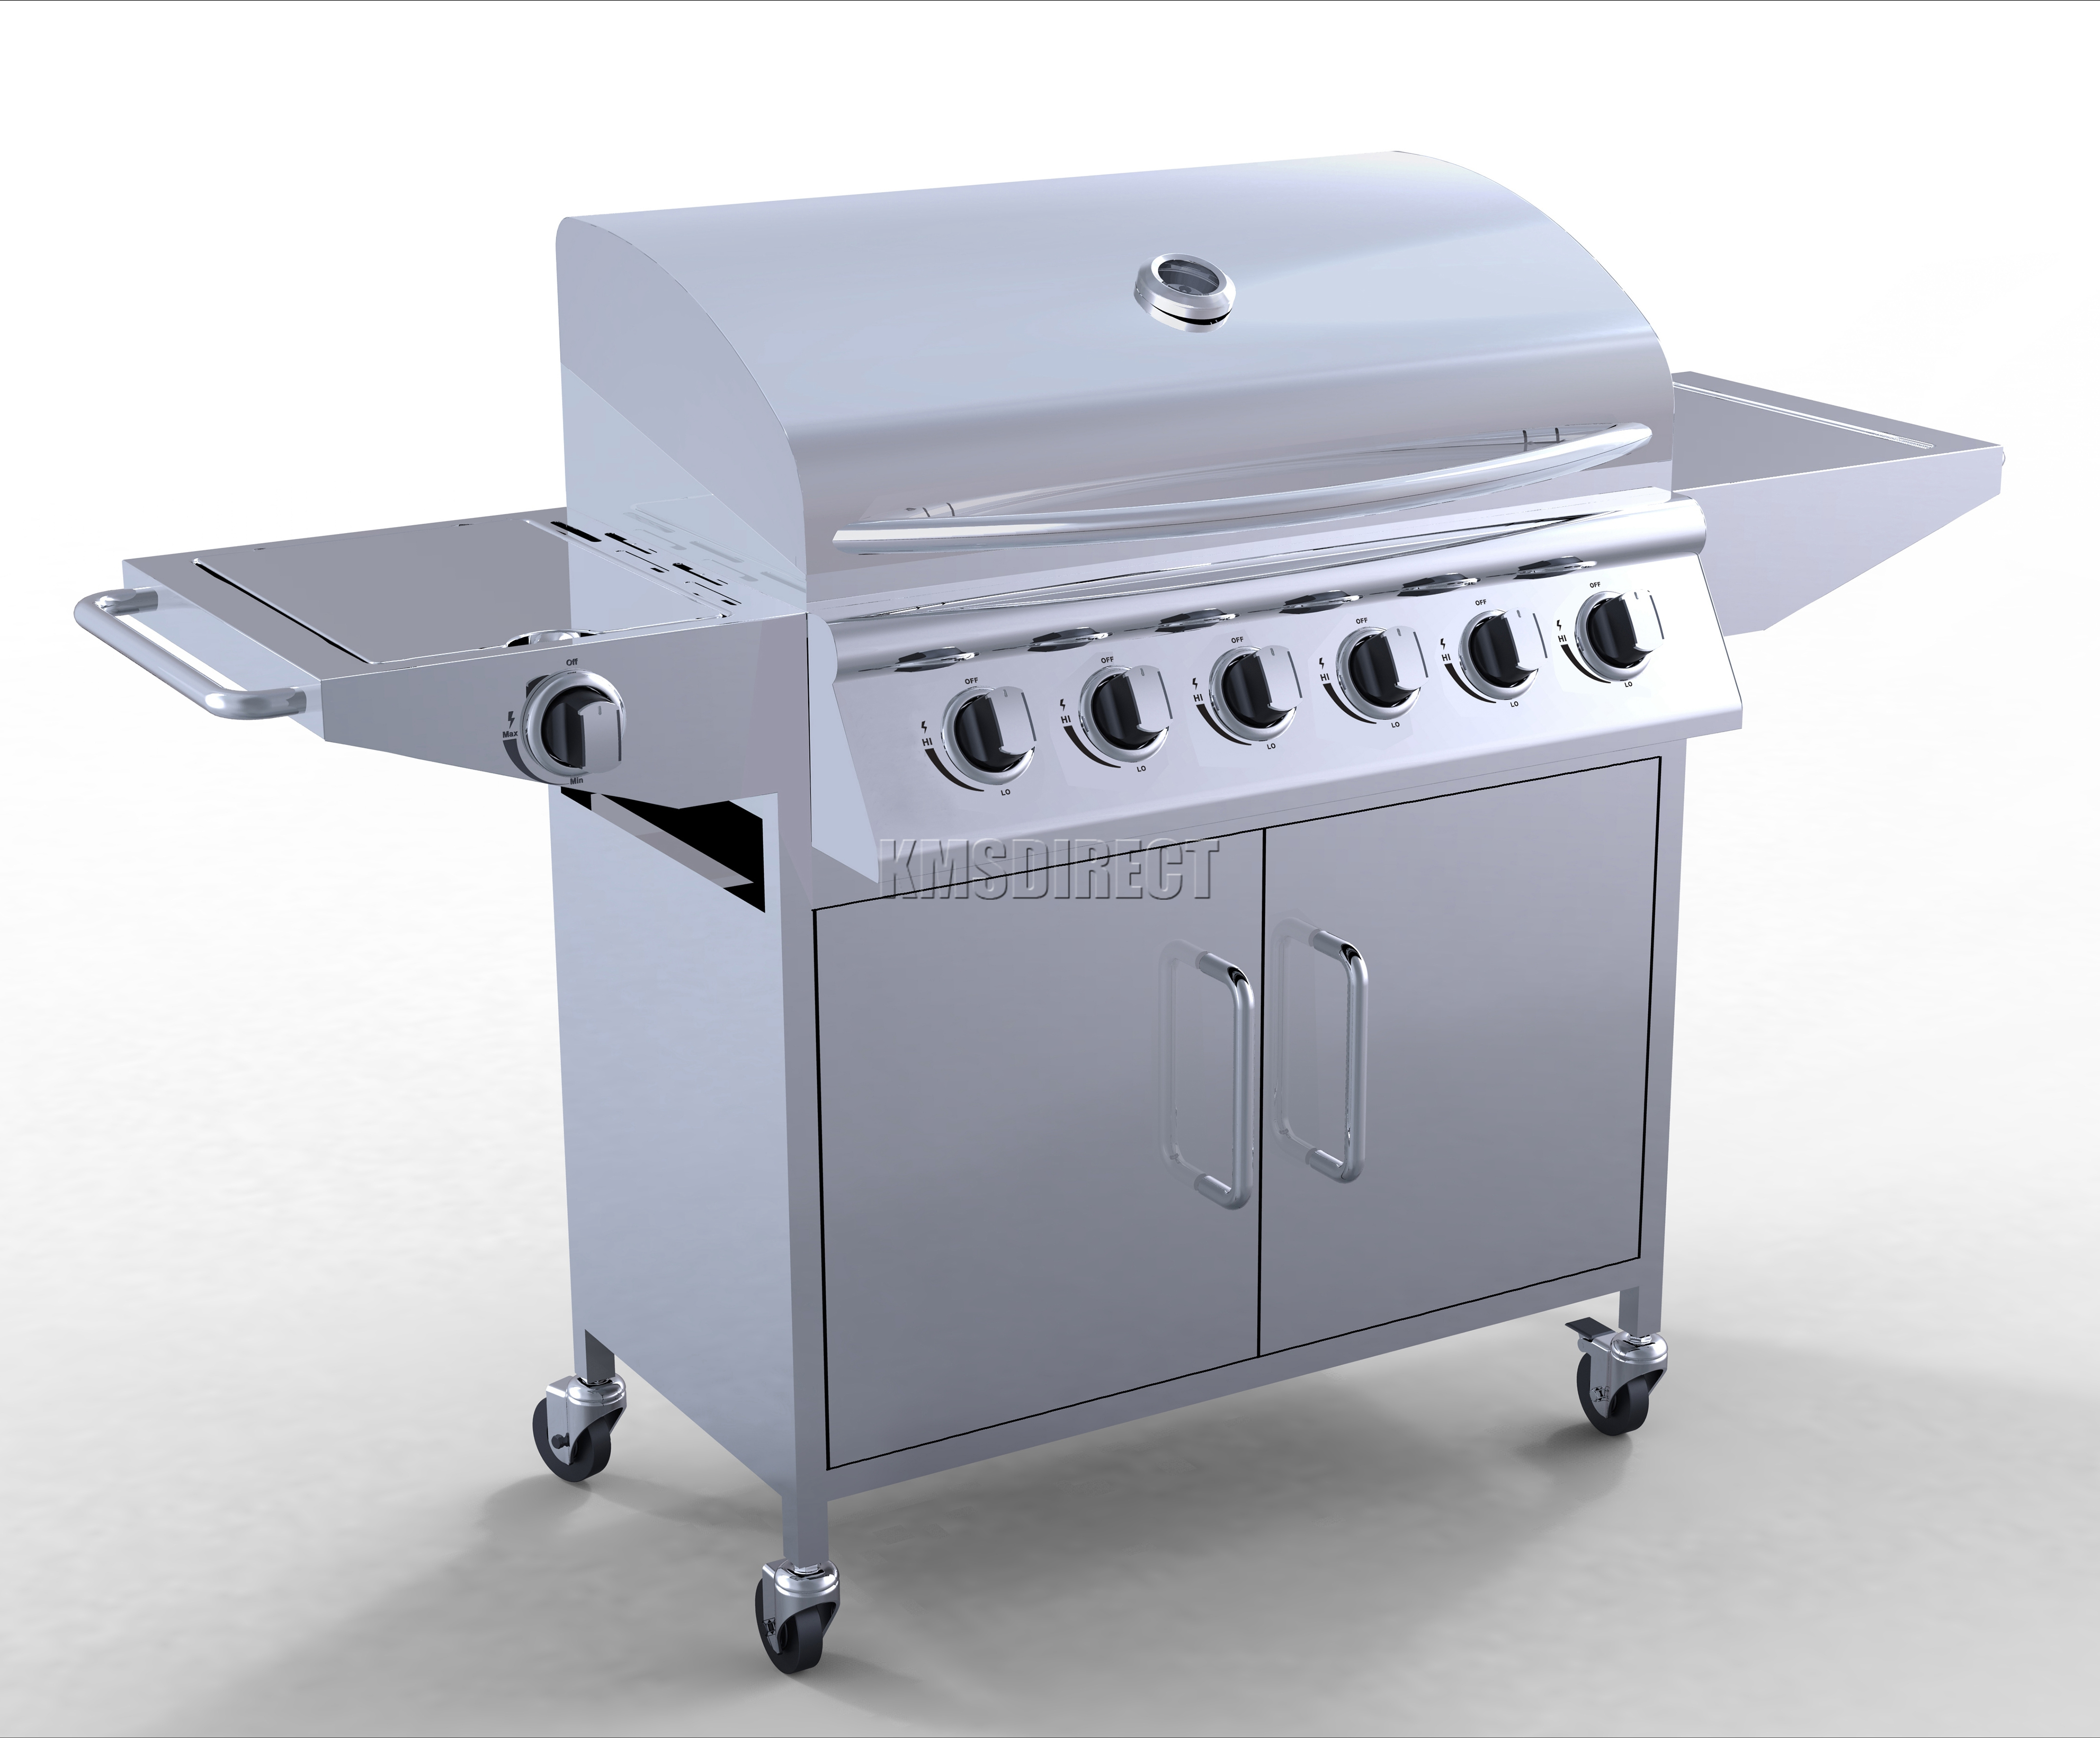 Foxhunter 6 Burner Bbq Gas Grill Stainless Steel Barbecue